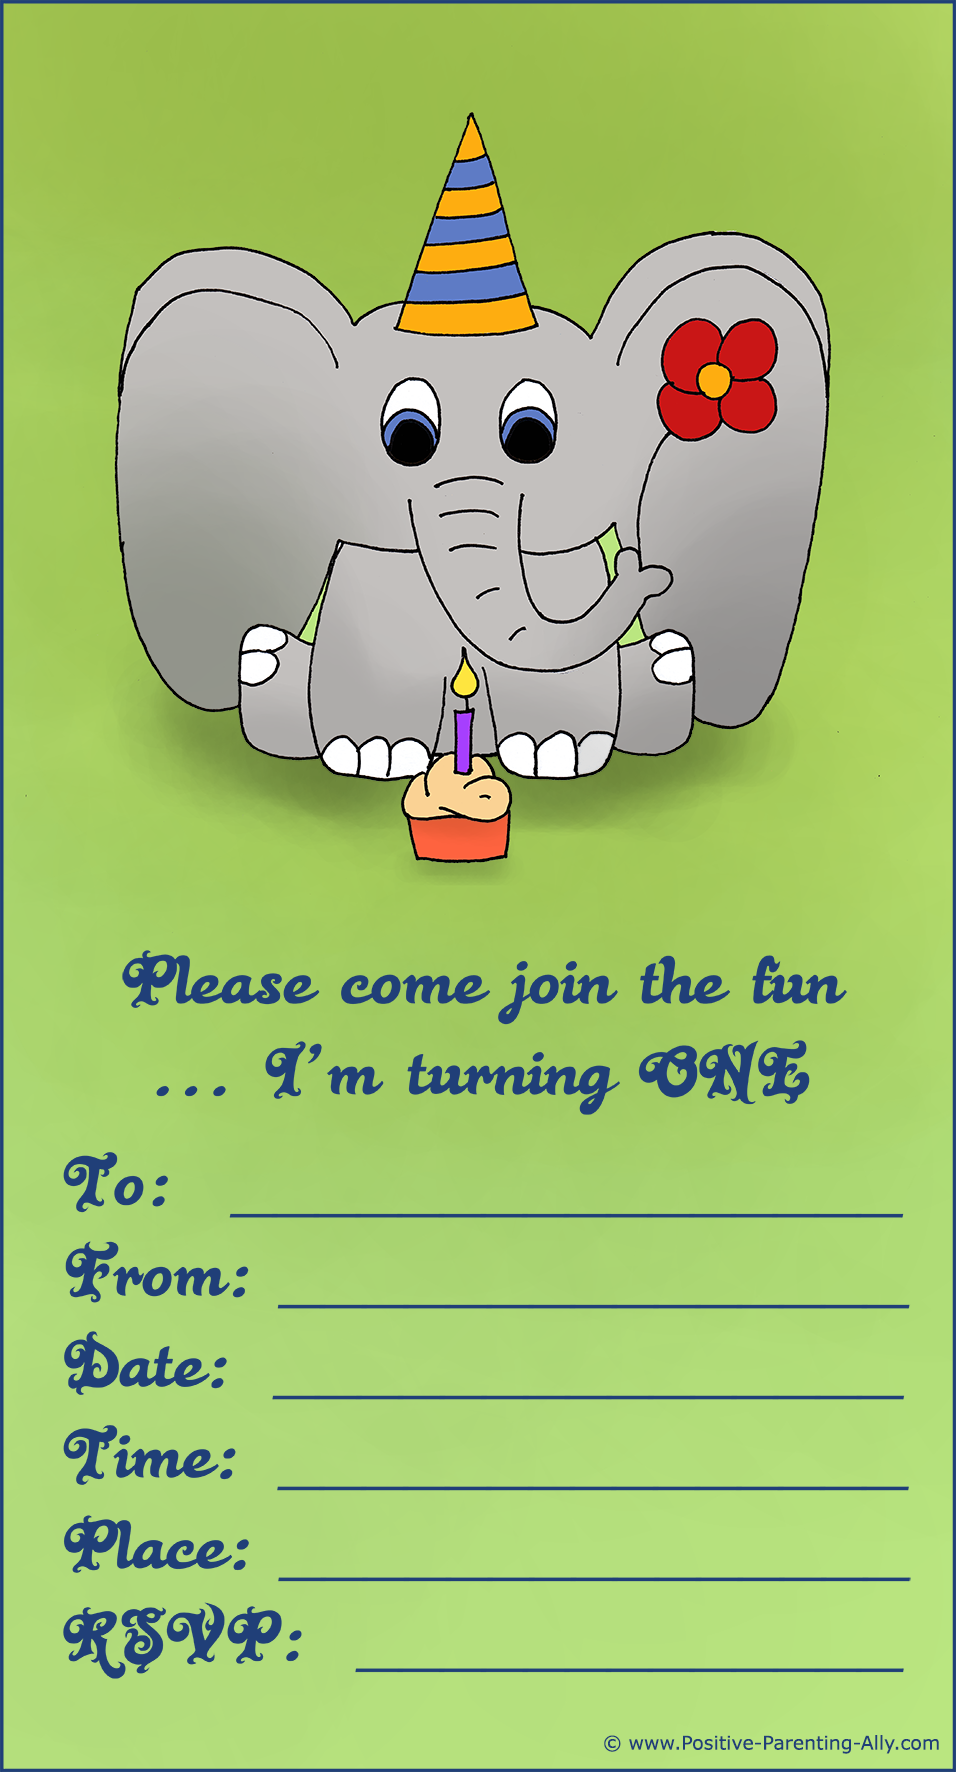 Printable First Birthday Party Invitations Cute Baby Elephant For Both Girls And Boys